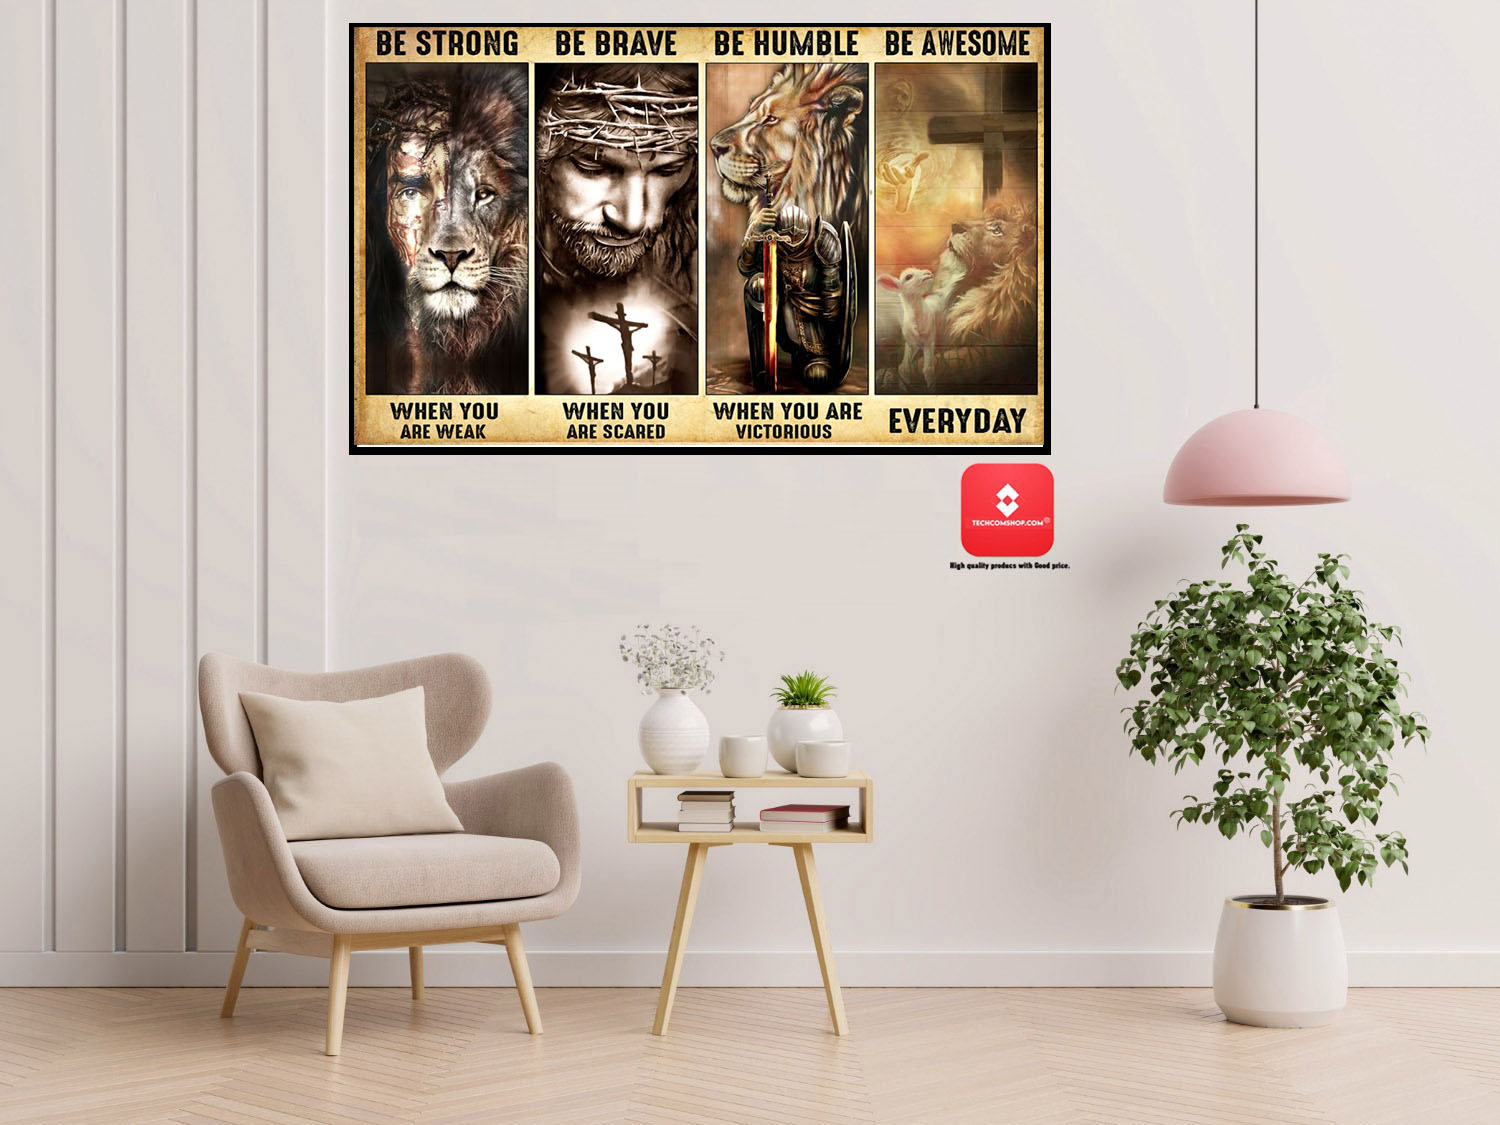 God Lamb Lion be strong be brave be humble be awesome poster 7